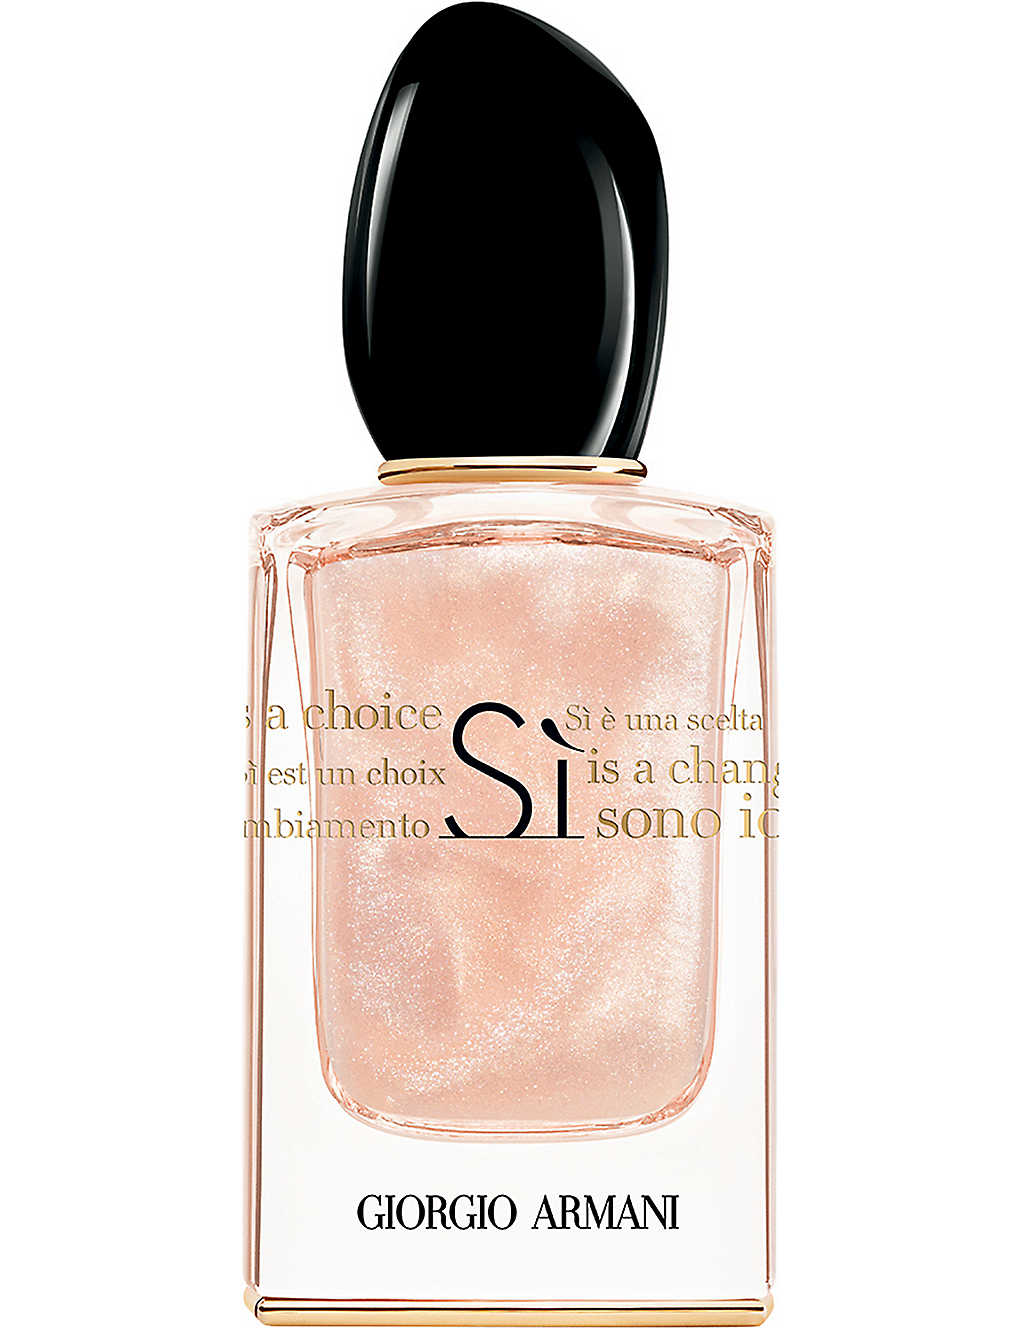 Limited Edition Sparkling Si Narce Eau De Parfum 100ml